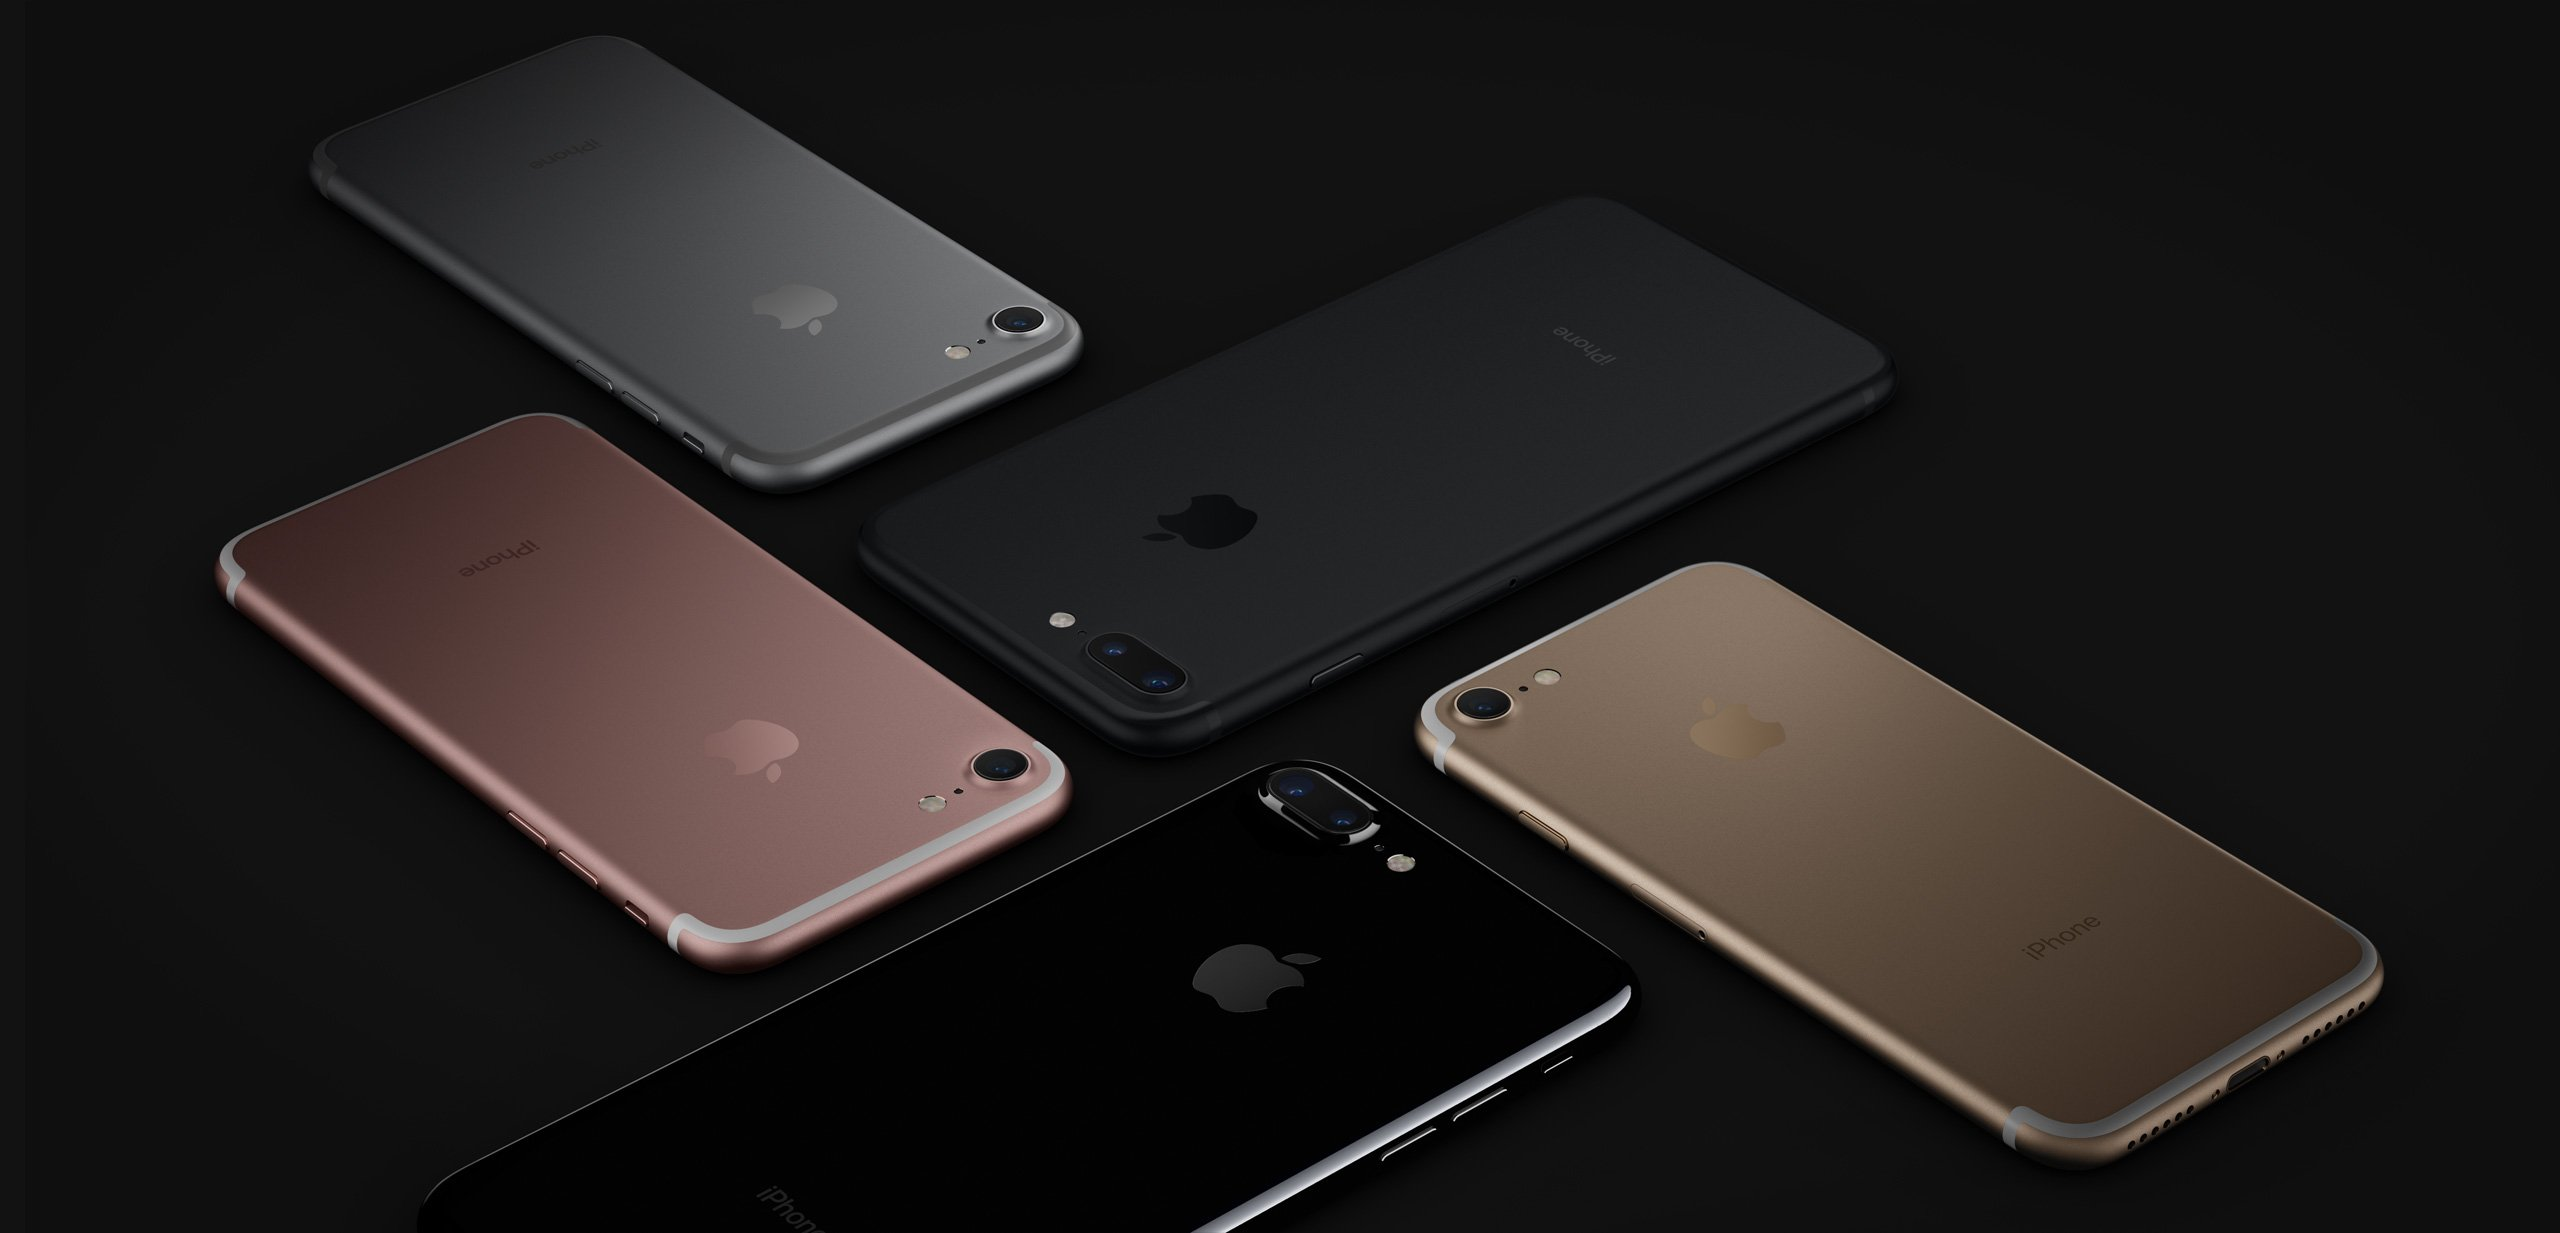 Iphone 7 And Plus Price In Nepal